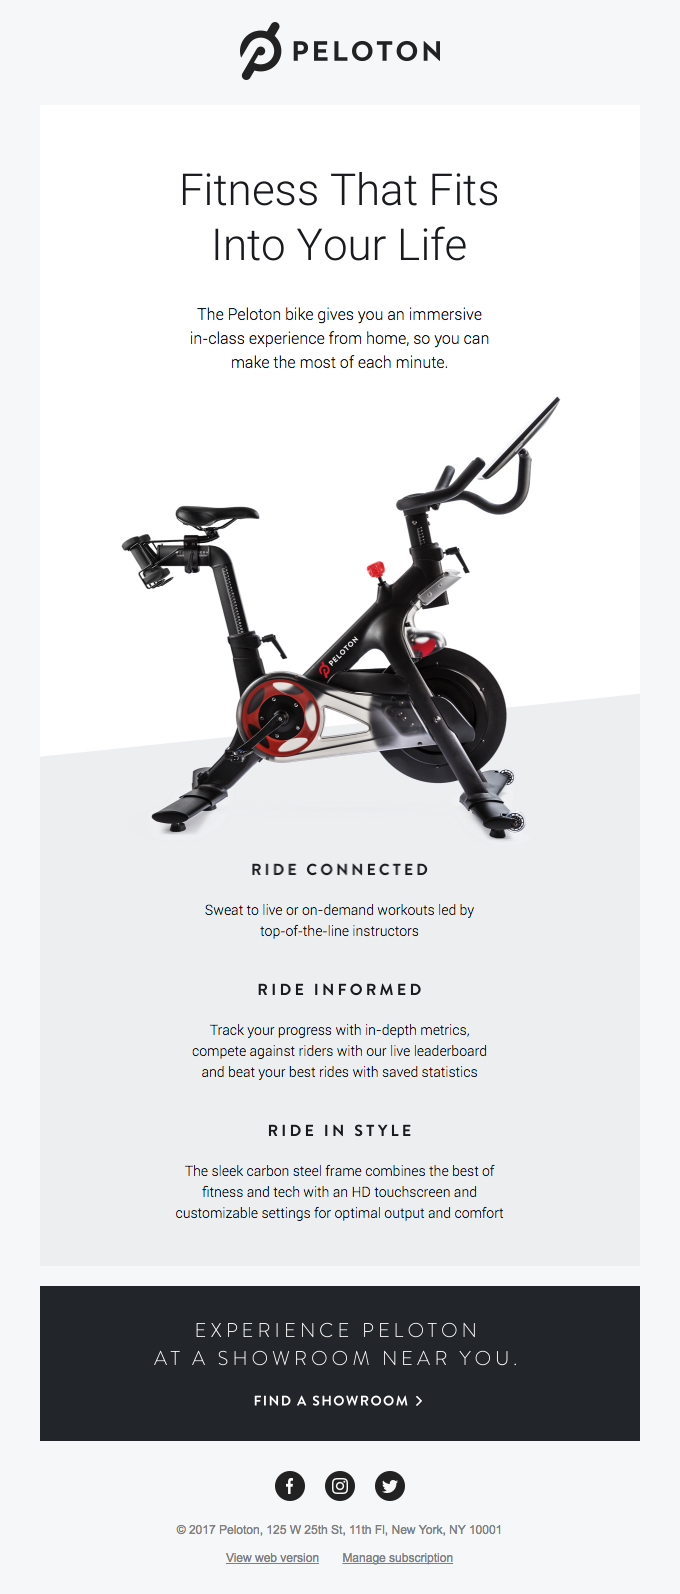 The Peloton Bike: Studio cycling from the comfort of home